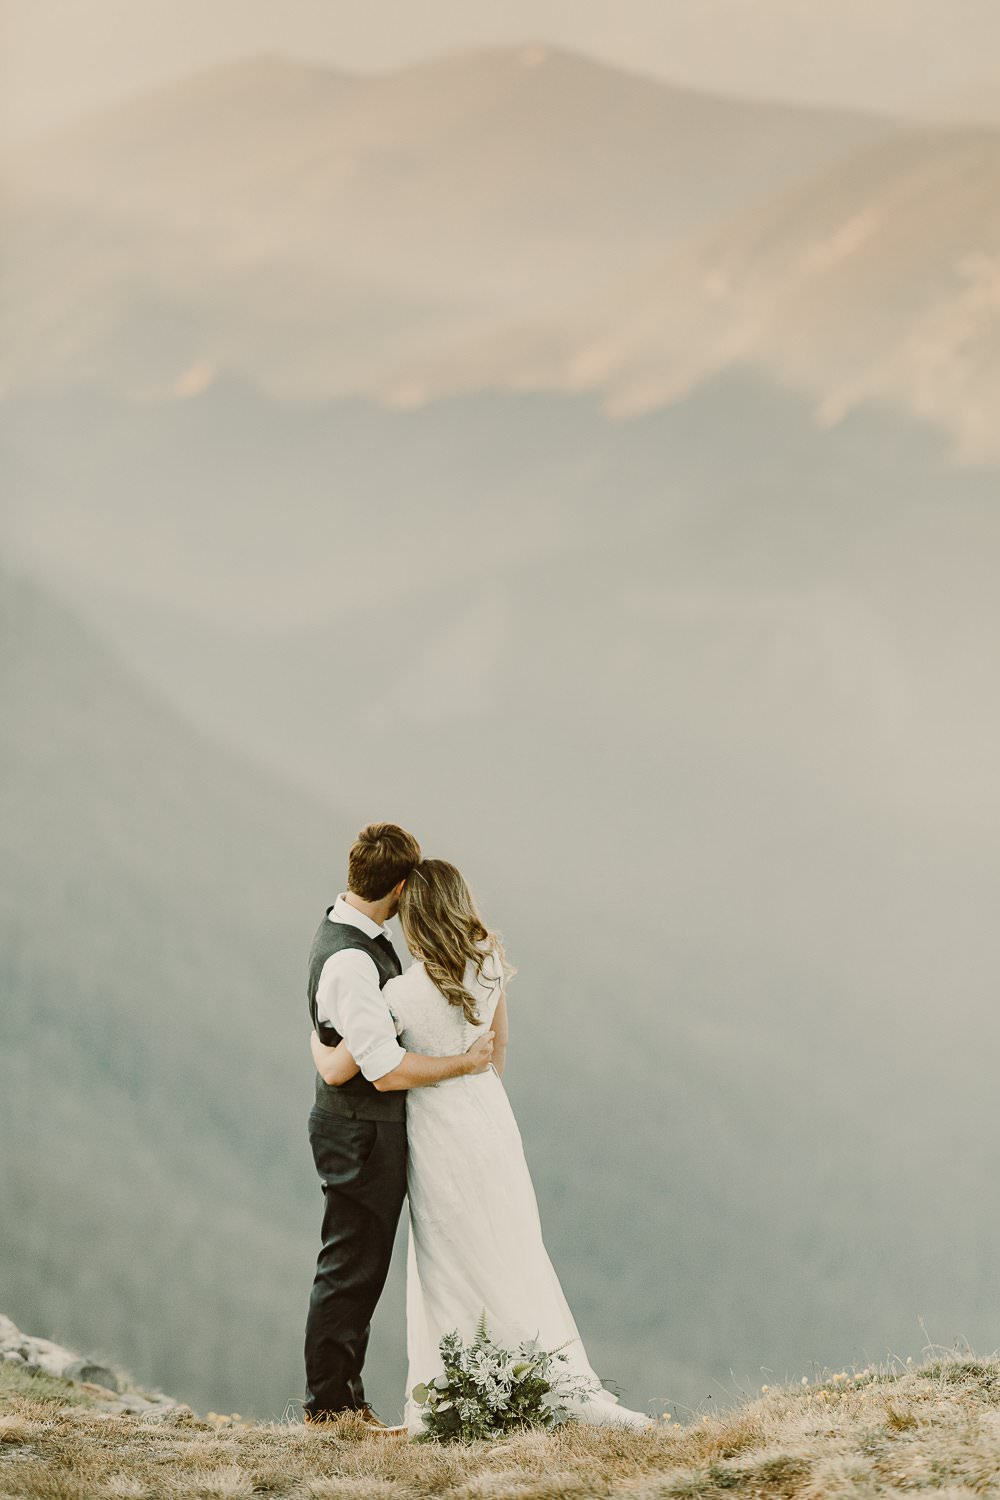 ADVENTURE DESTINATION ELOPEMENT|ROCKY MOUNTAIN NATIONAL PARK WEDDING|RMNP ELOPEMENT|3M CURVE CEREMONY |GRAND COUNTY HIKING ADVENTURES|SELF-SOLEMNIZING COLORADO ELOPEMENT |TANDA+STEPHEN